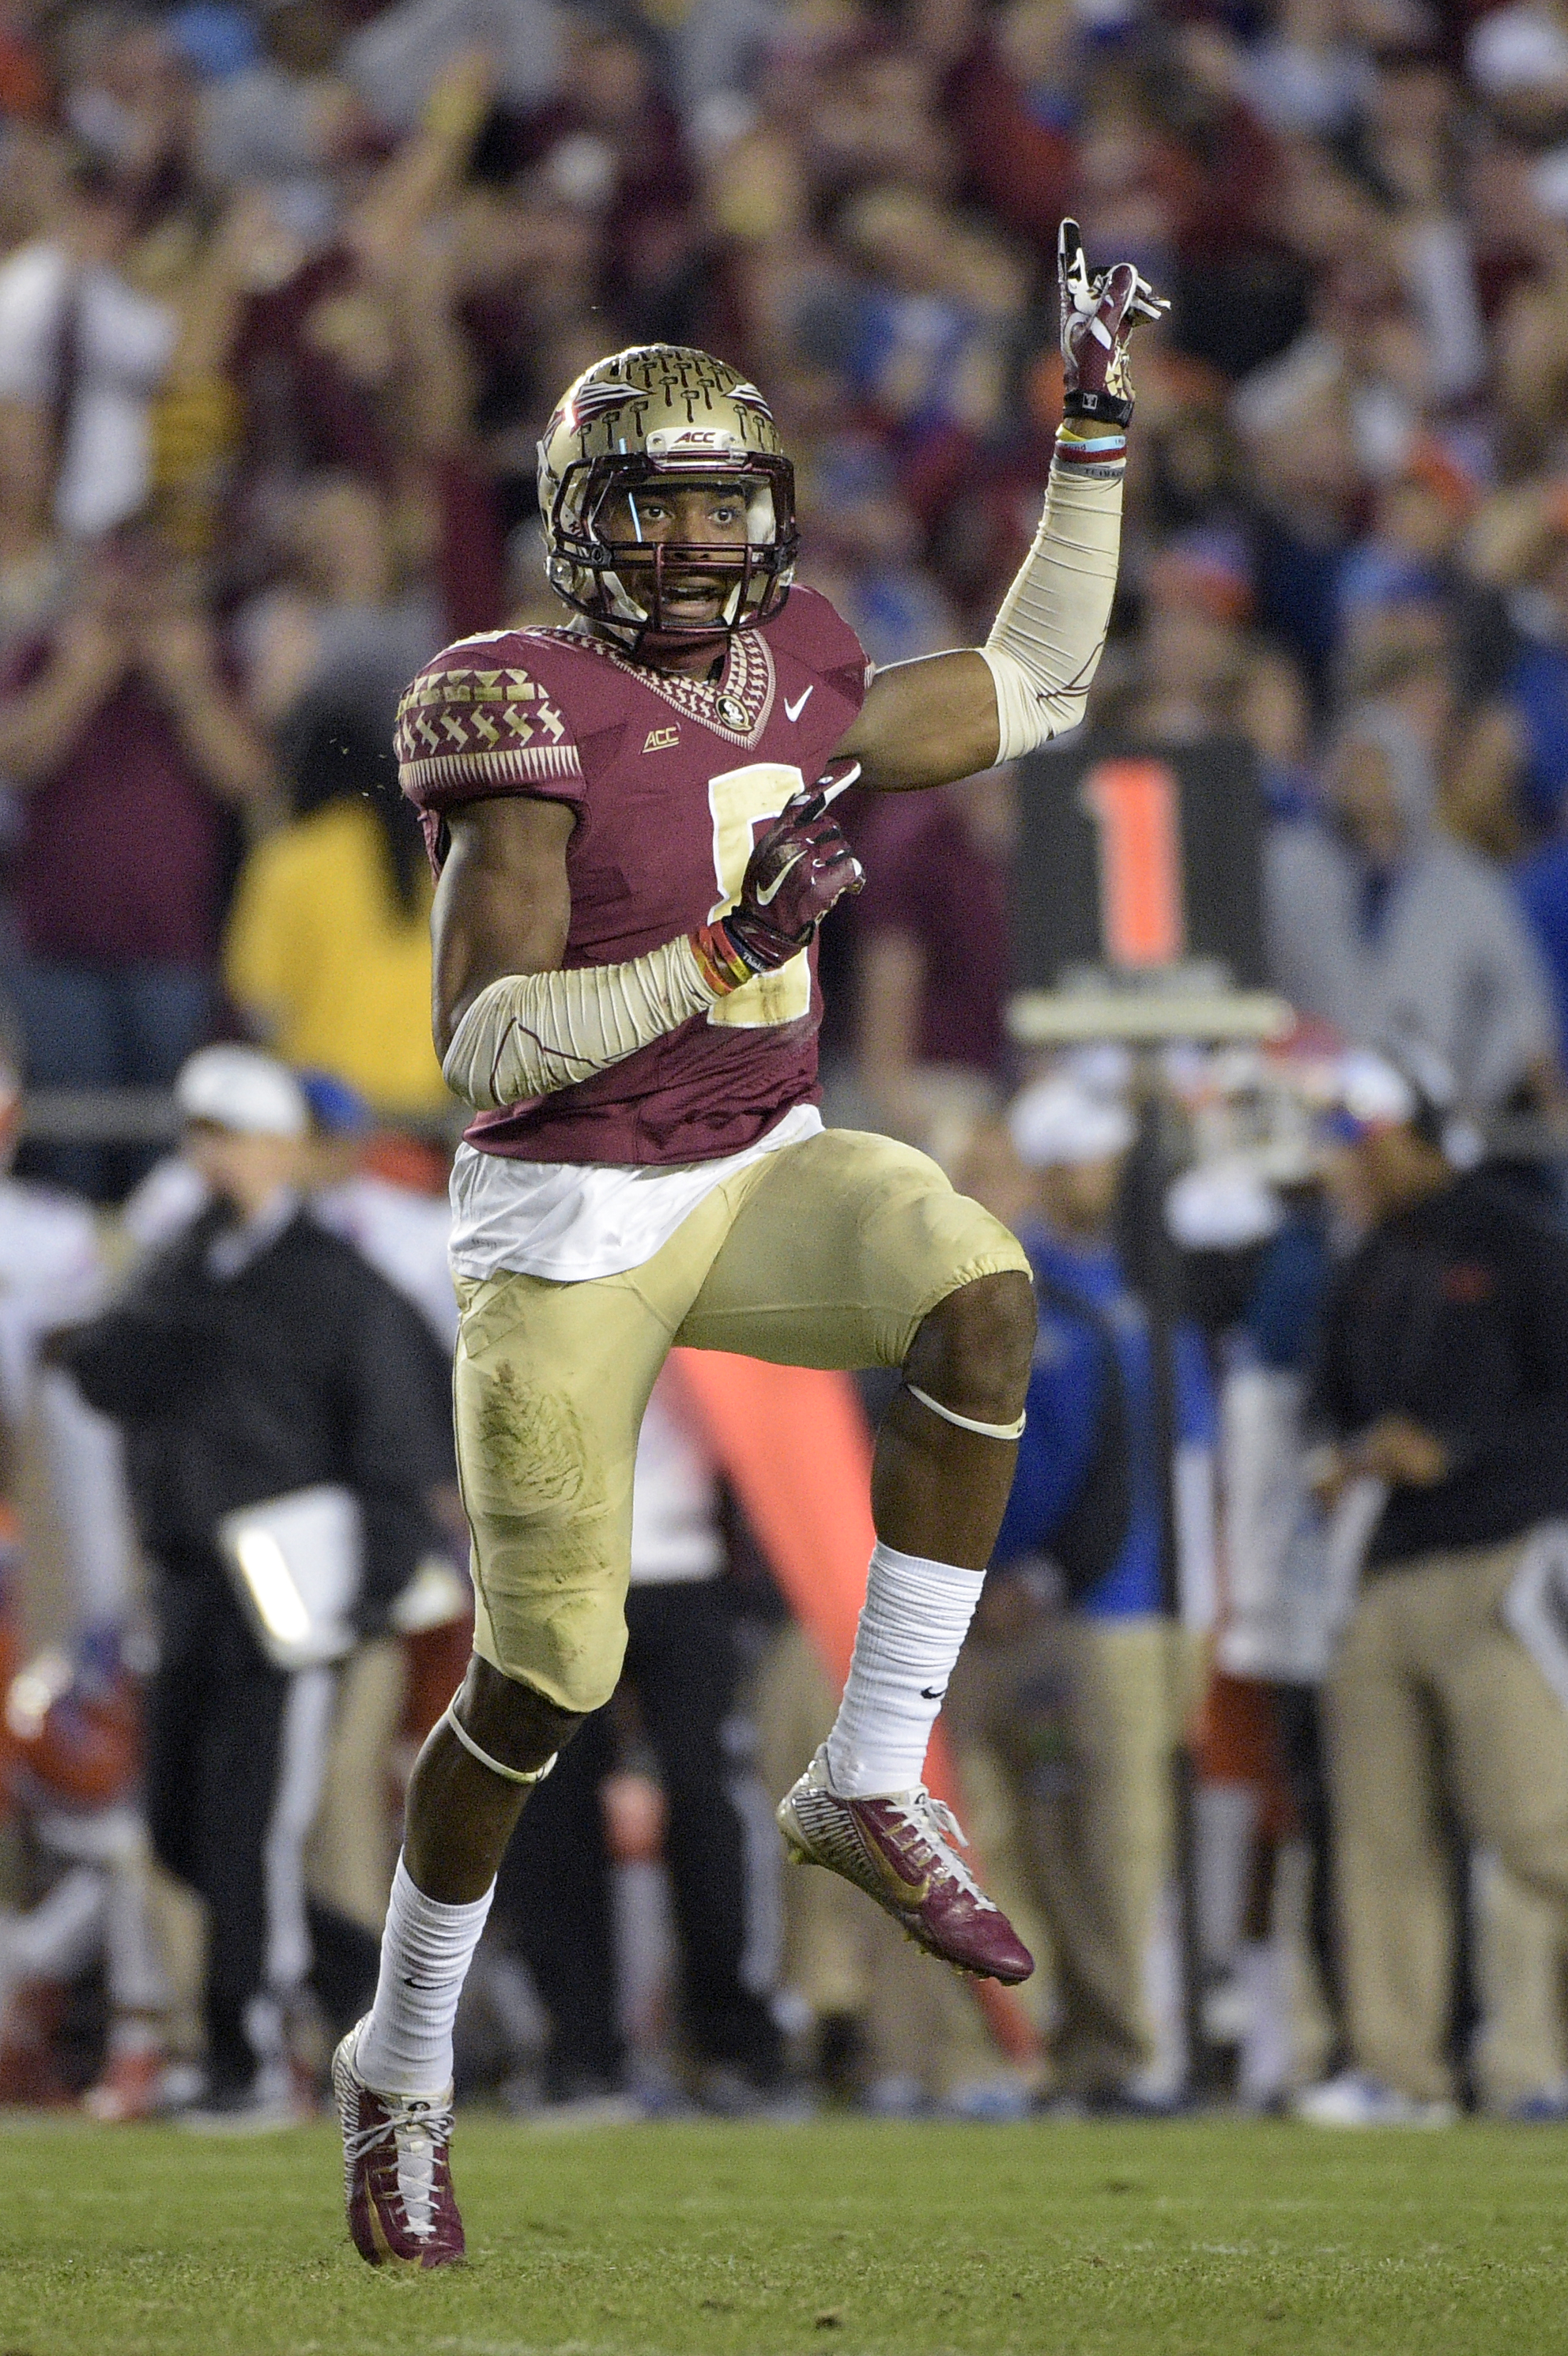 FILE - In this Nov. 29, 2014, file photo, Florida State defensive back Jalen Ramsey (8) reacts to a play during the second half of an NCAA college football game against Florida in Tallahassee, Fla. Ramsey has already been a national champion and All-Ameri